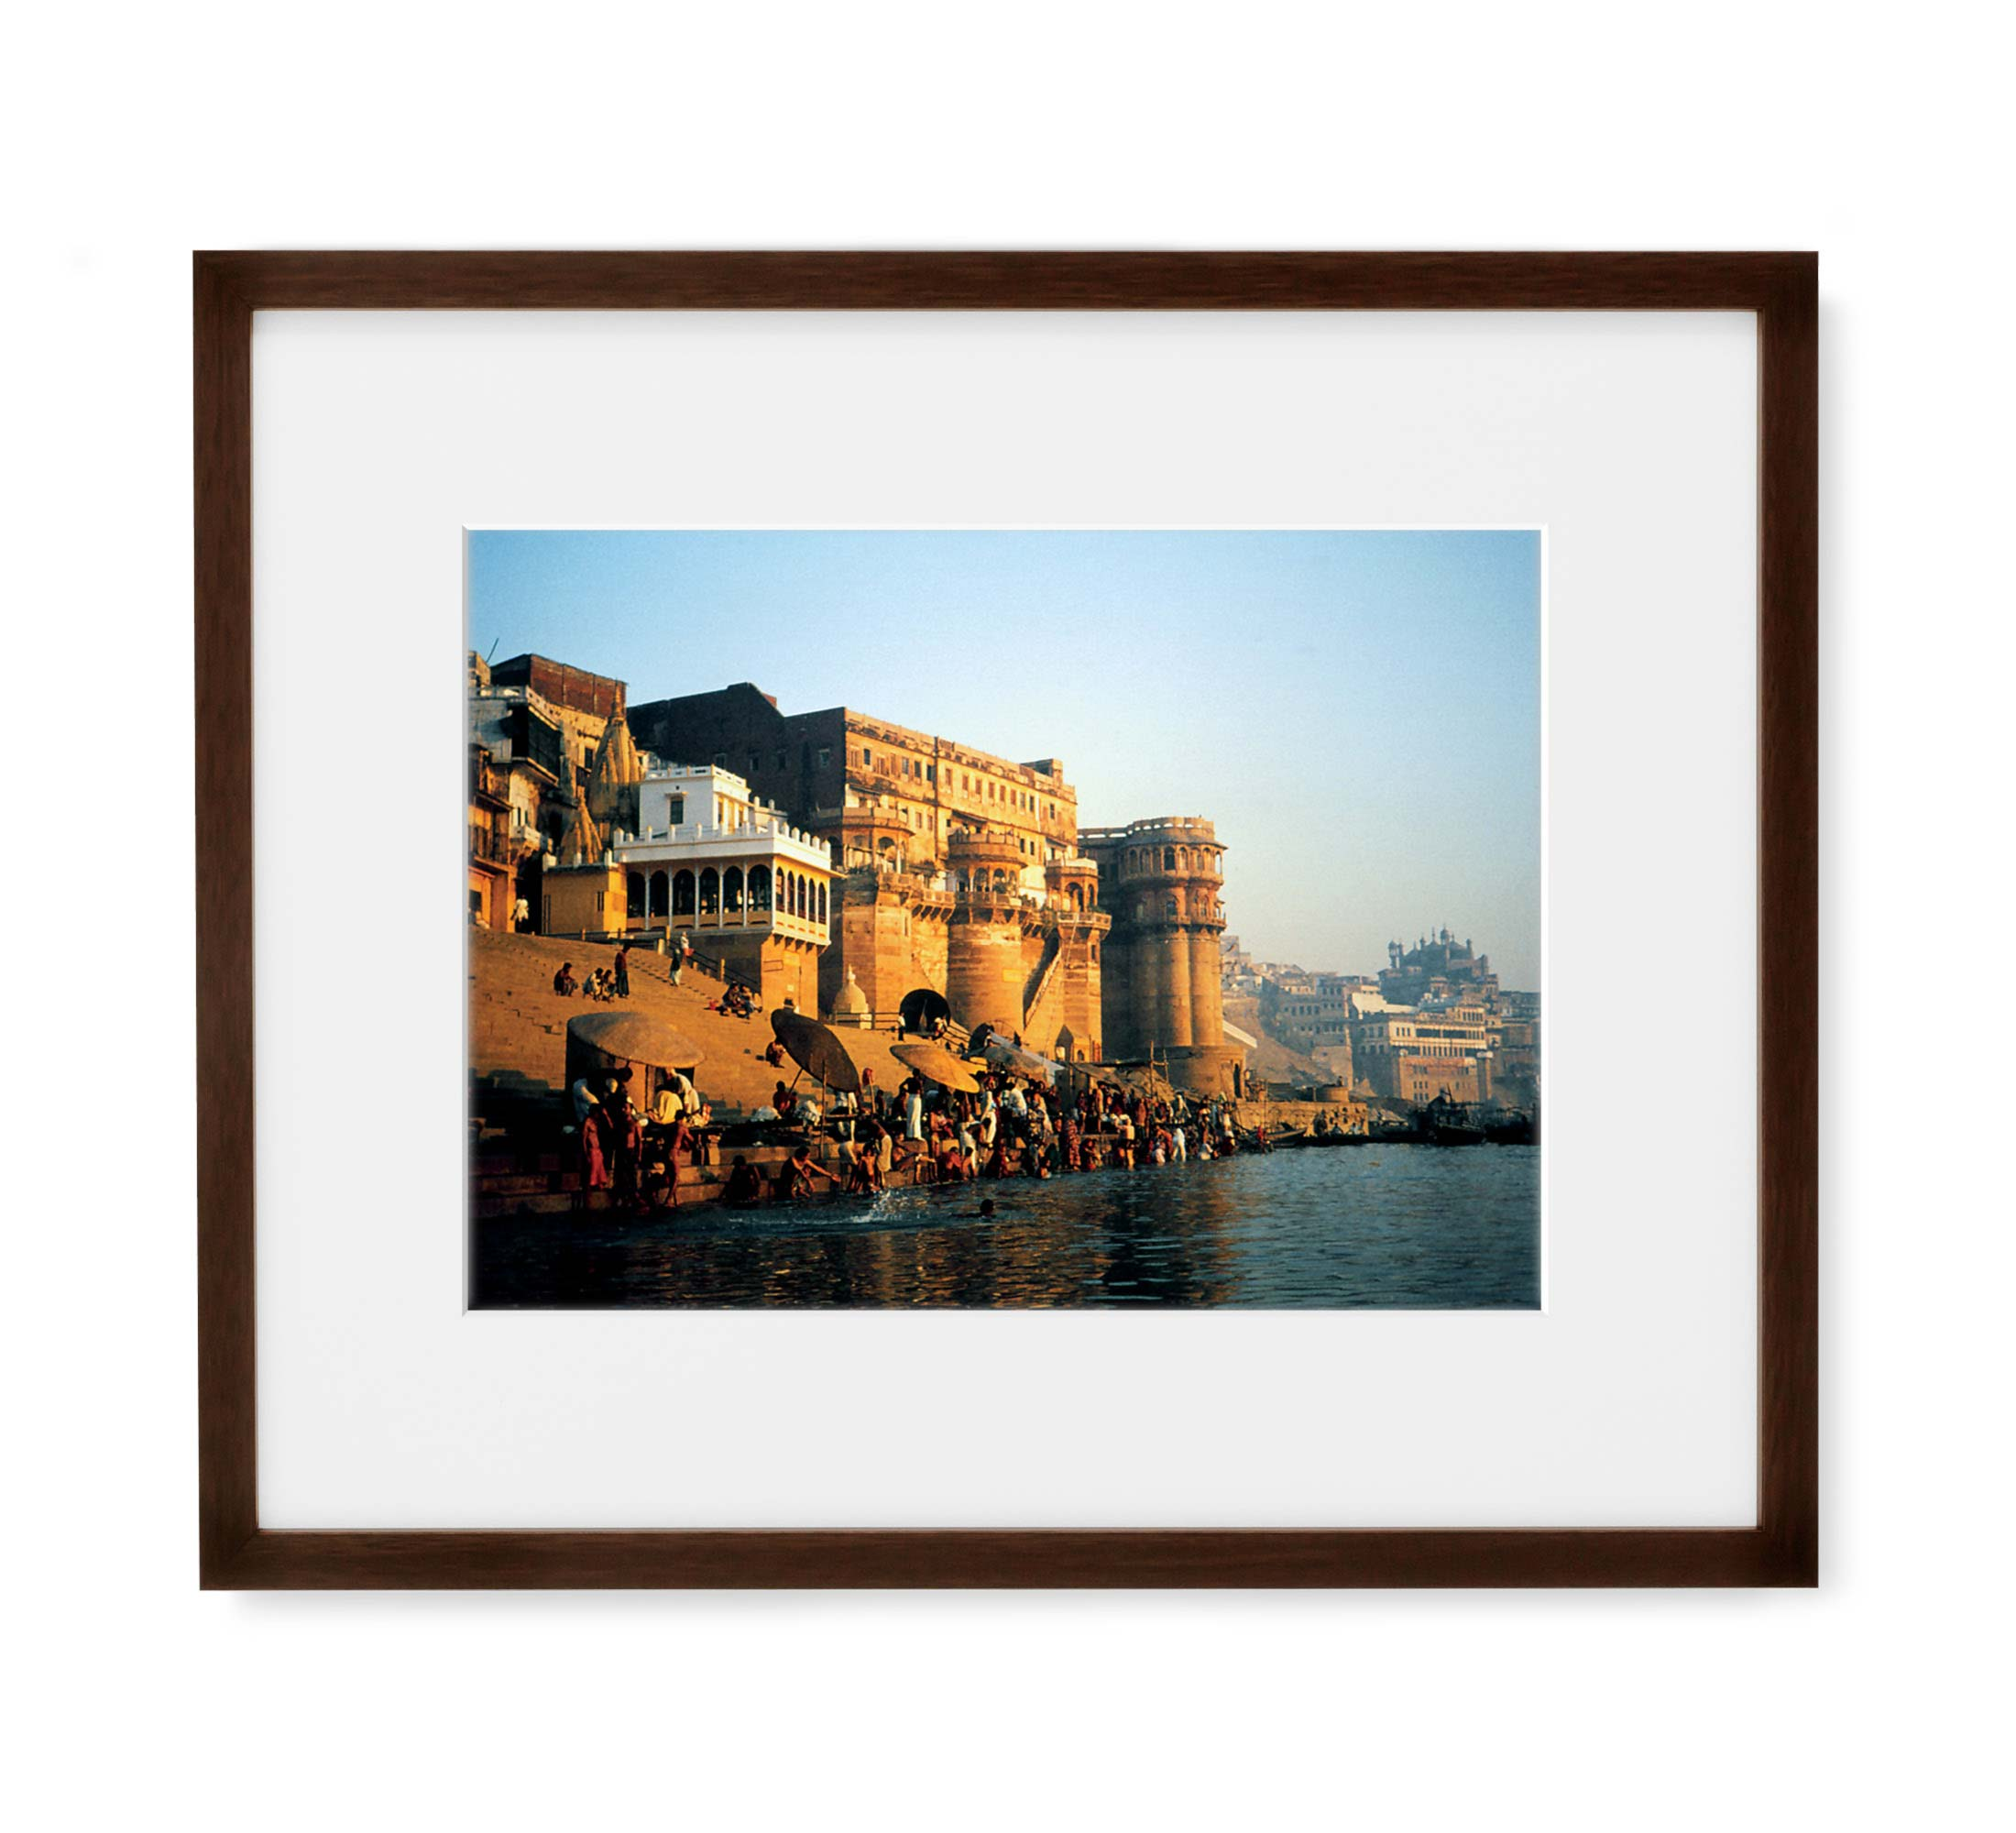 Golden Ganges Framed Brown Wood